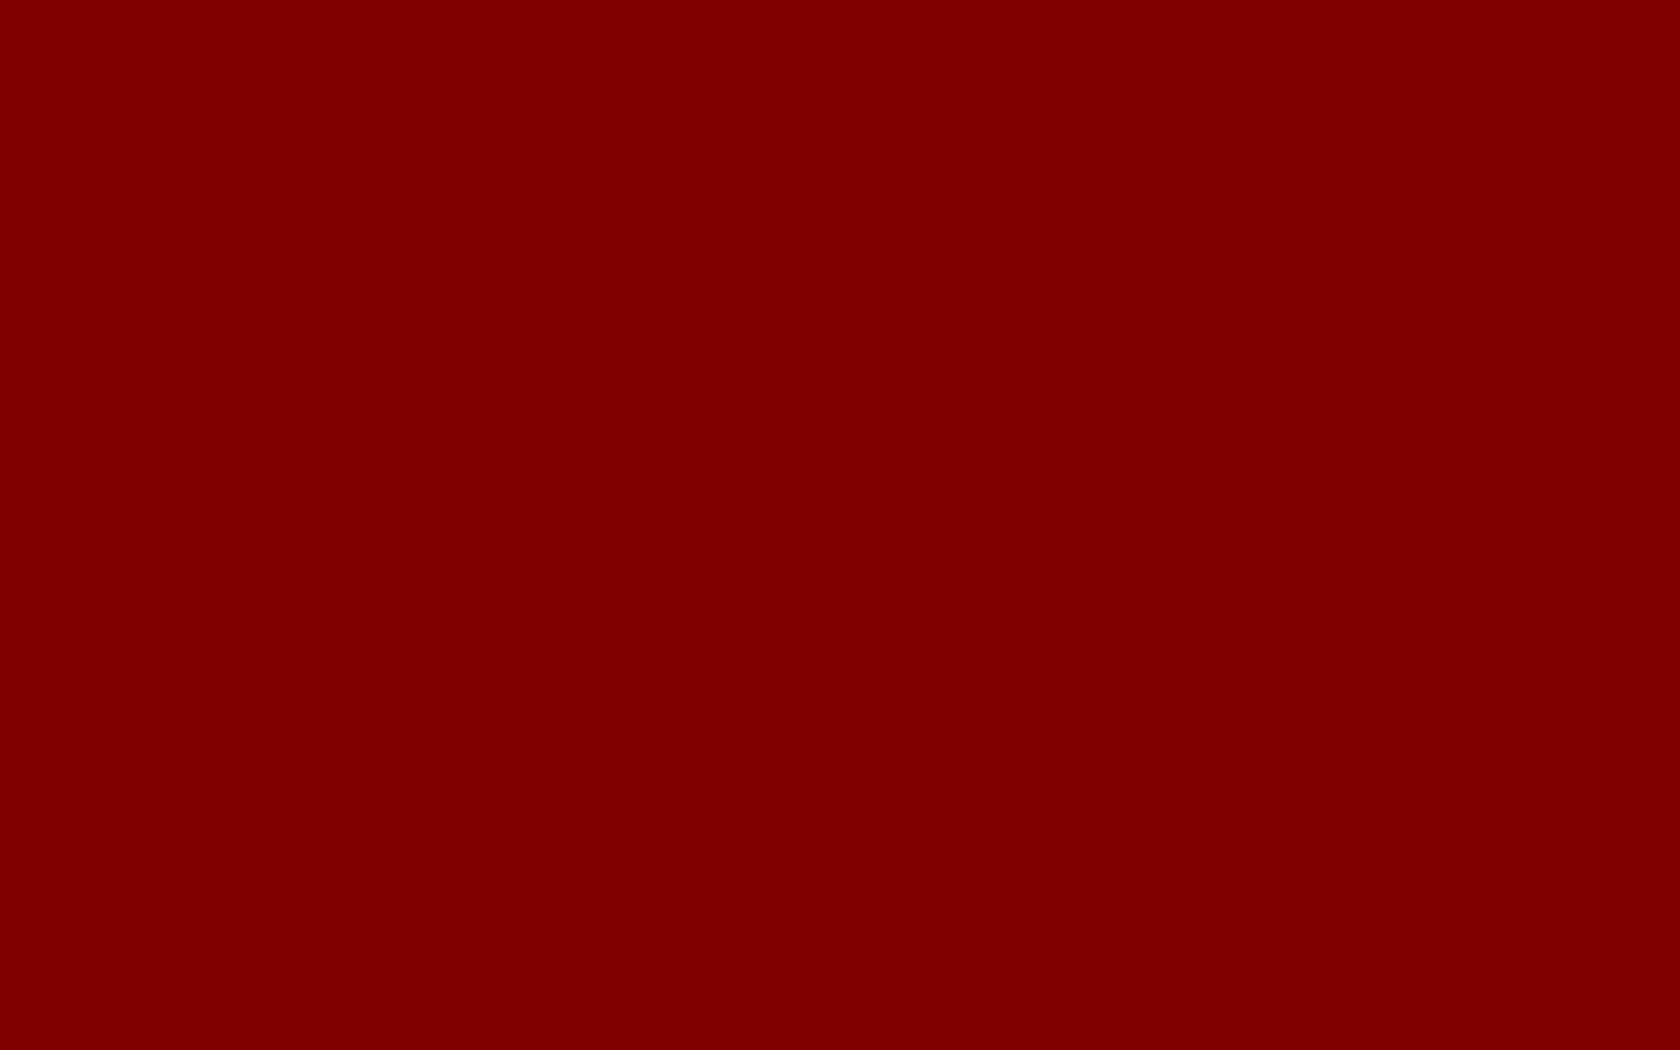 1680x1050 Maroon Web Solid Color Background